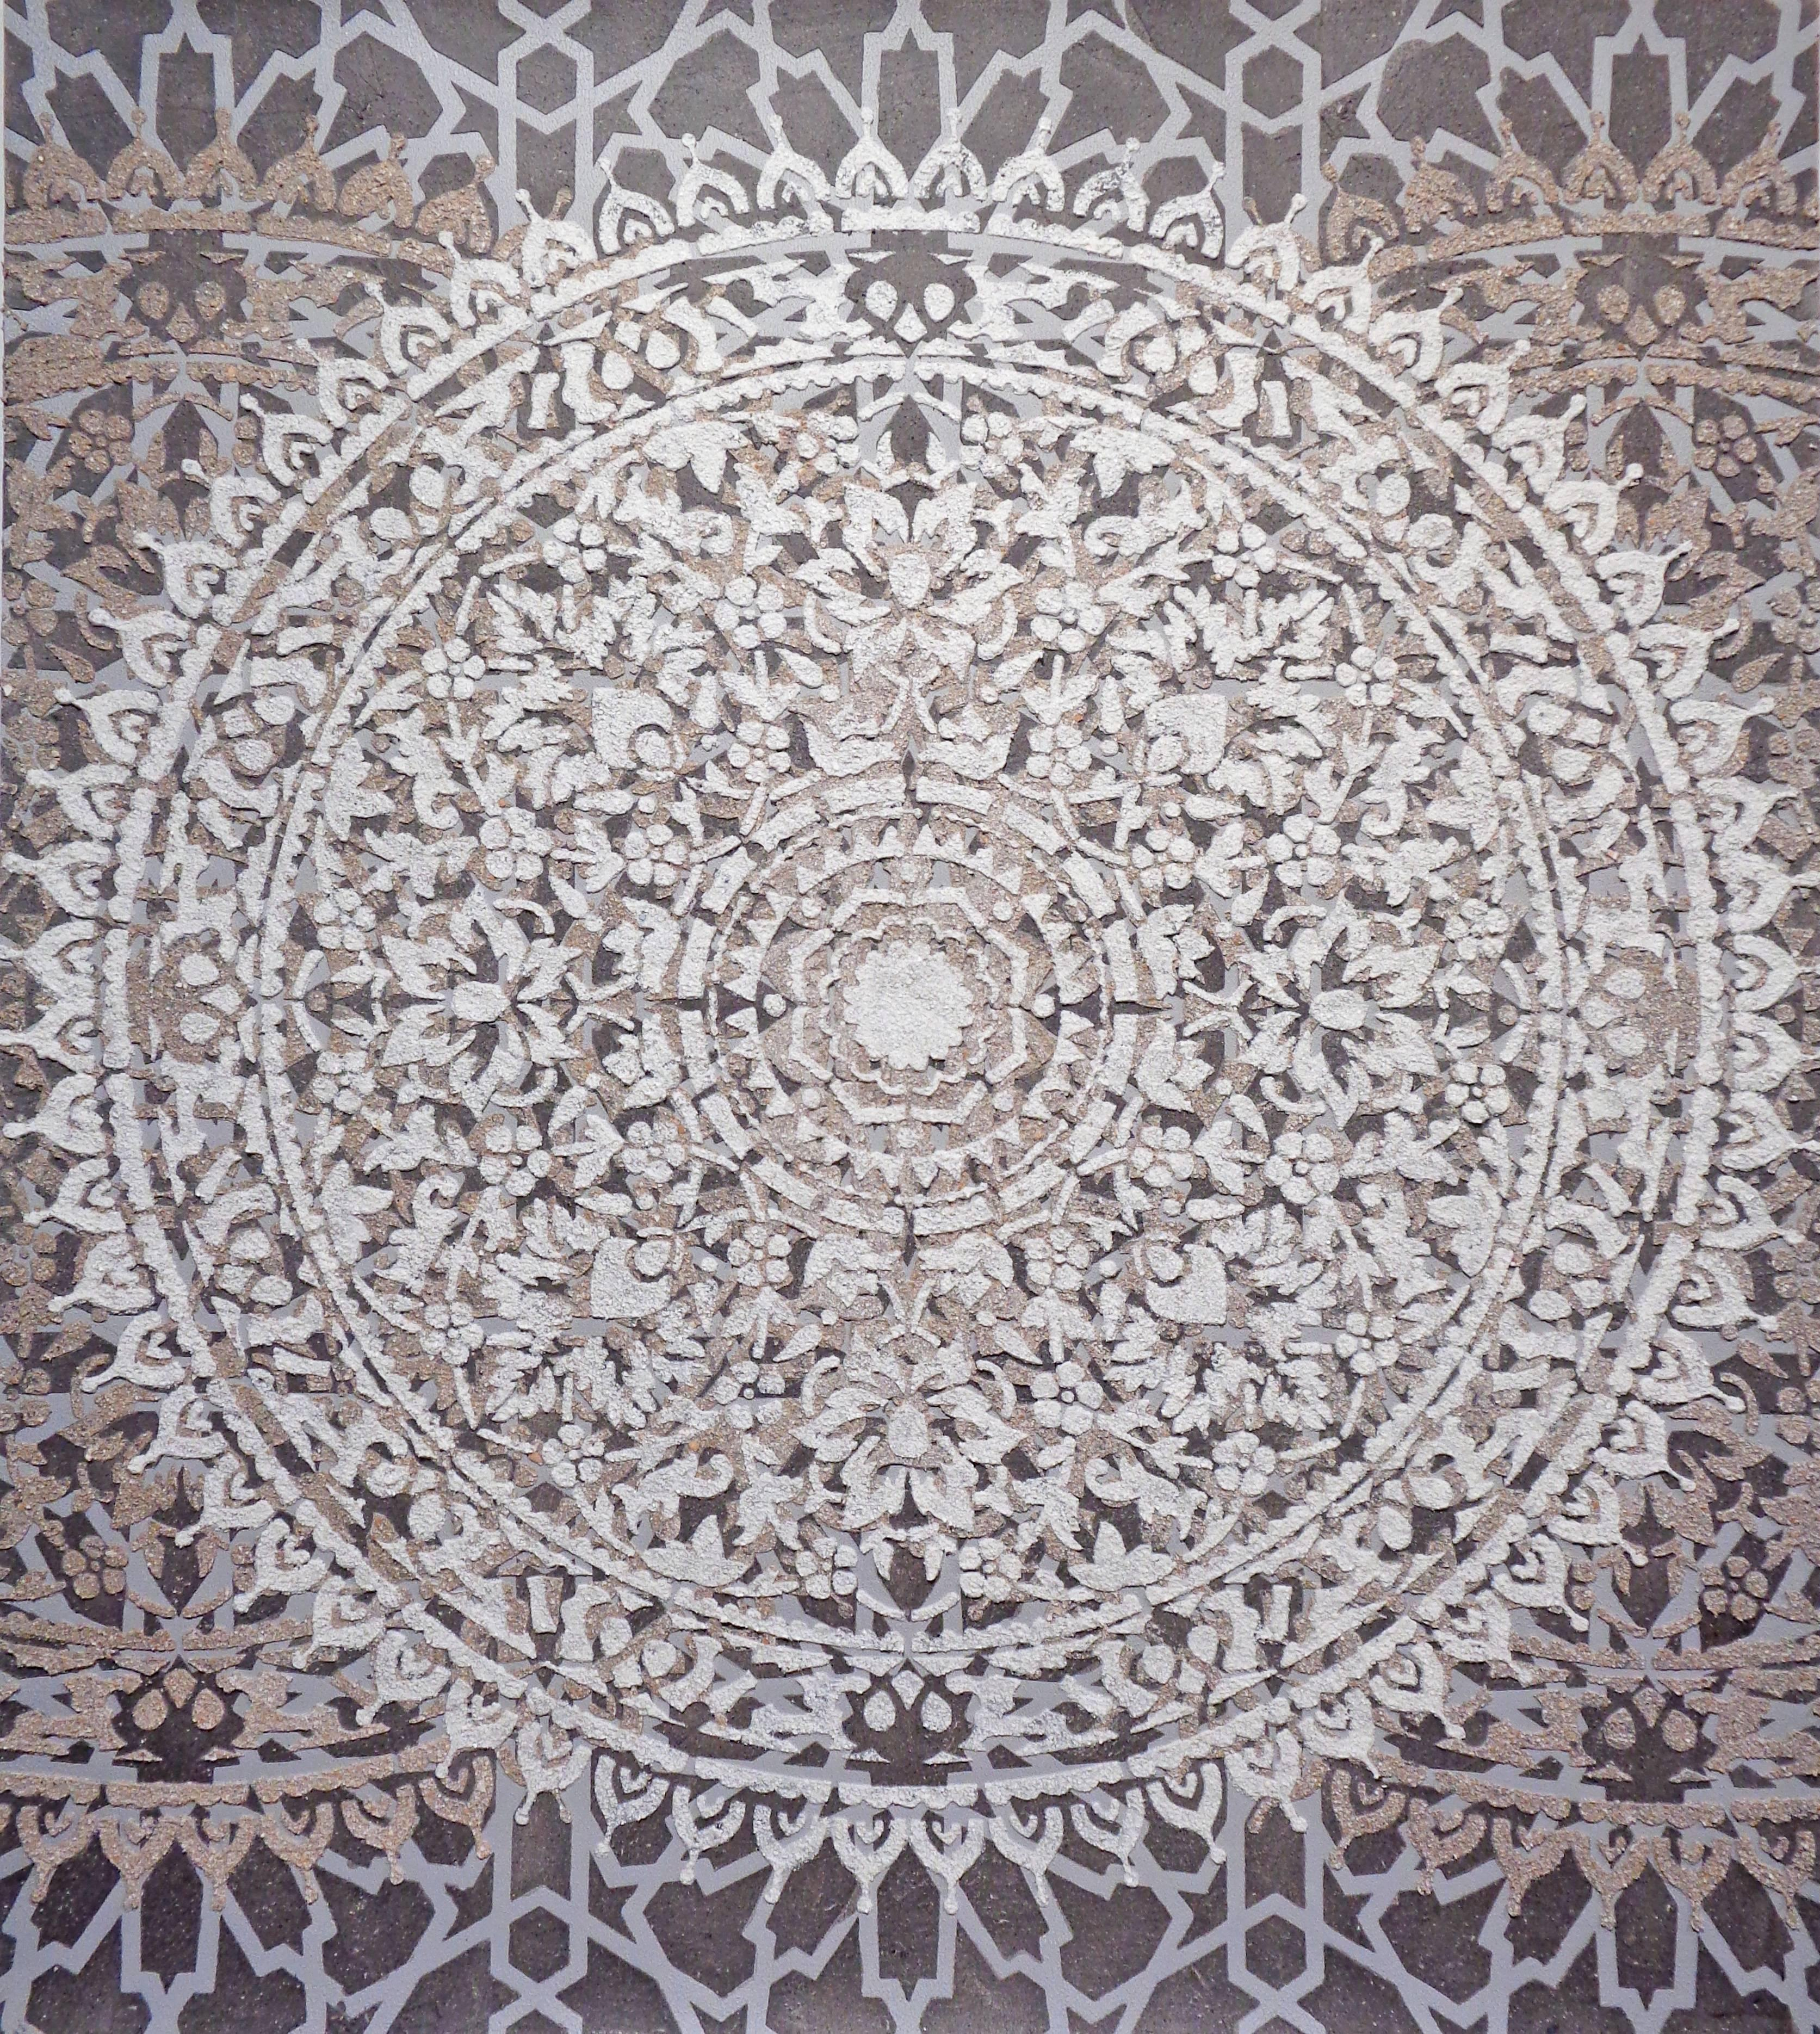 Eggshell Ash Mandala, Mixed Material Layered Texture Pattern in Grey and White